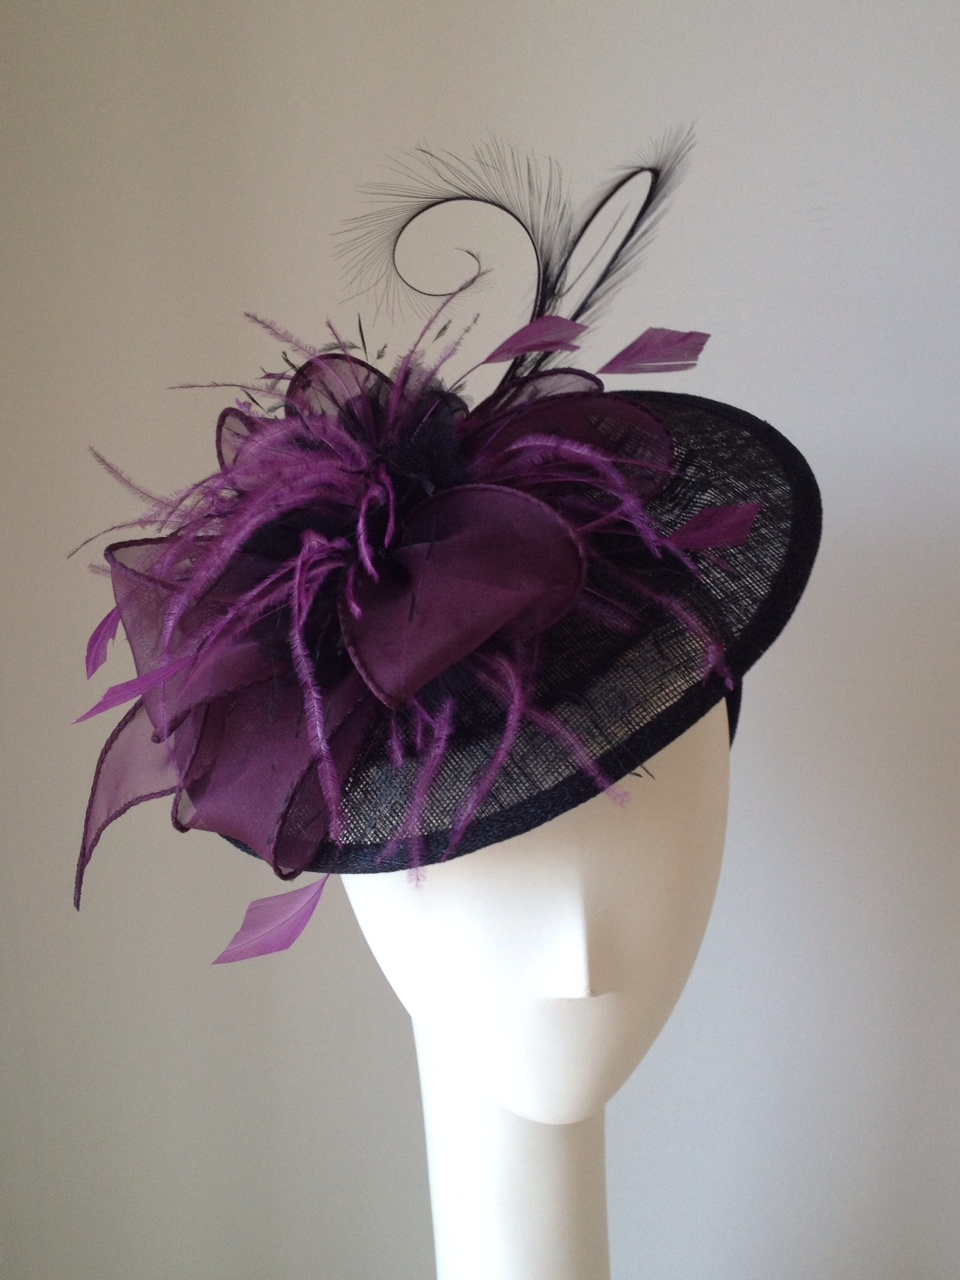 Del Mar Racetrack Opening Day Jill Courtemanche Millnery San Diego Polo Club Hat Headband black purple